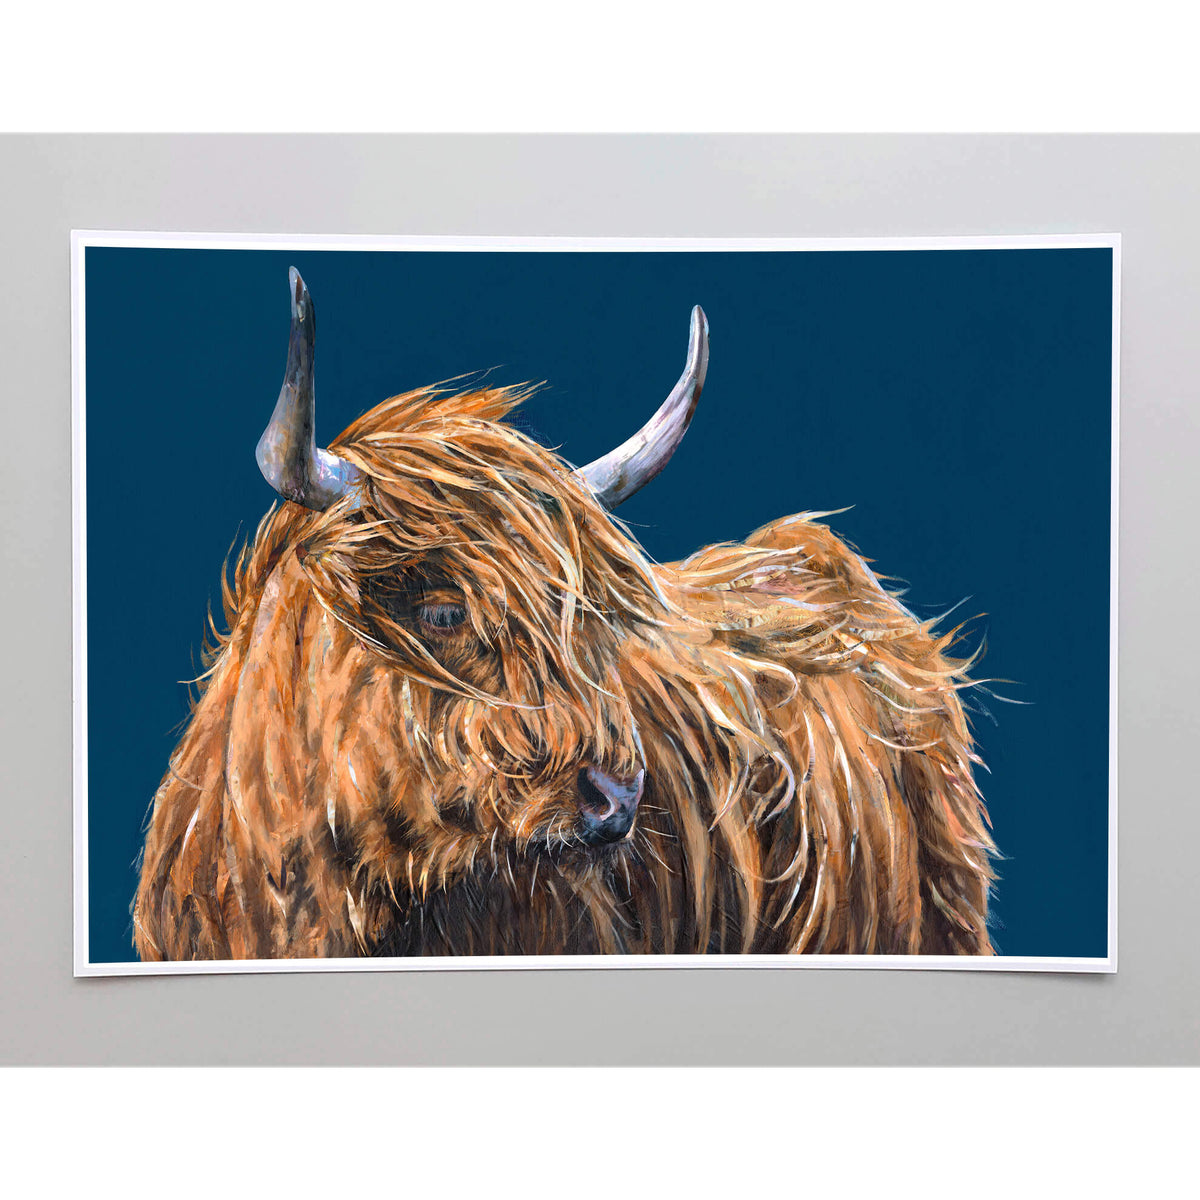 collaboration-art-of-highland-cow-jackson-and-young